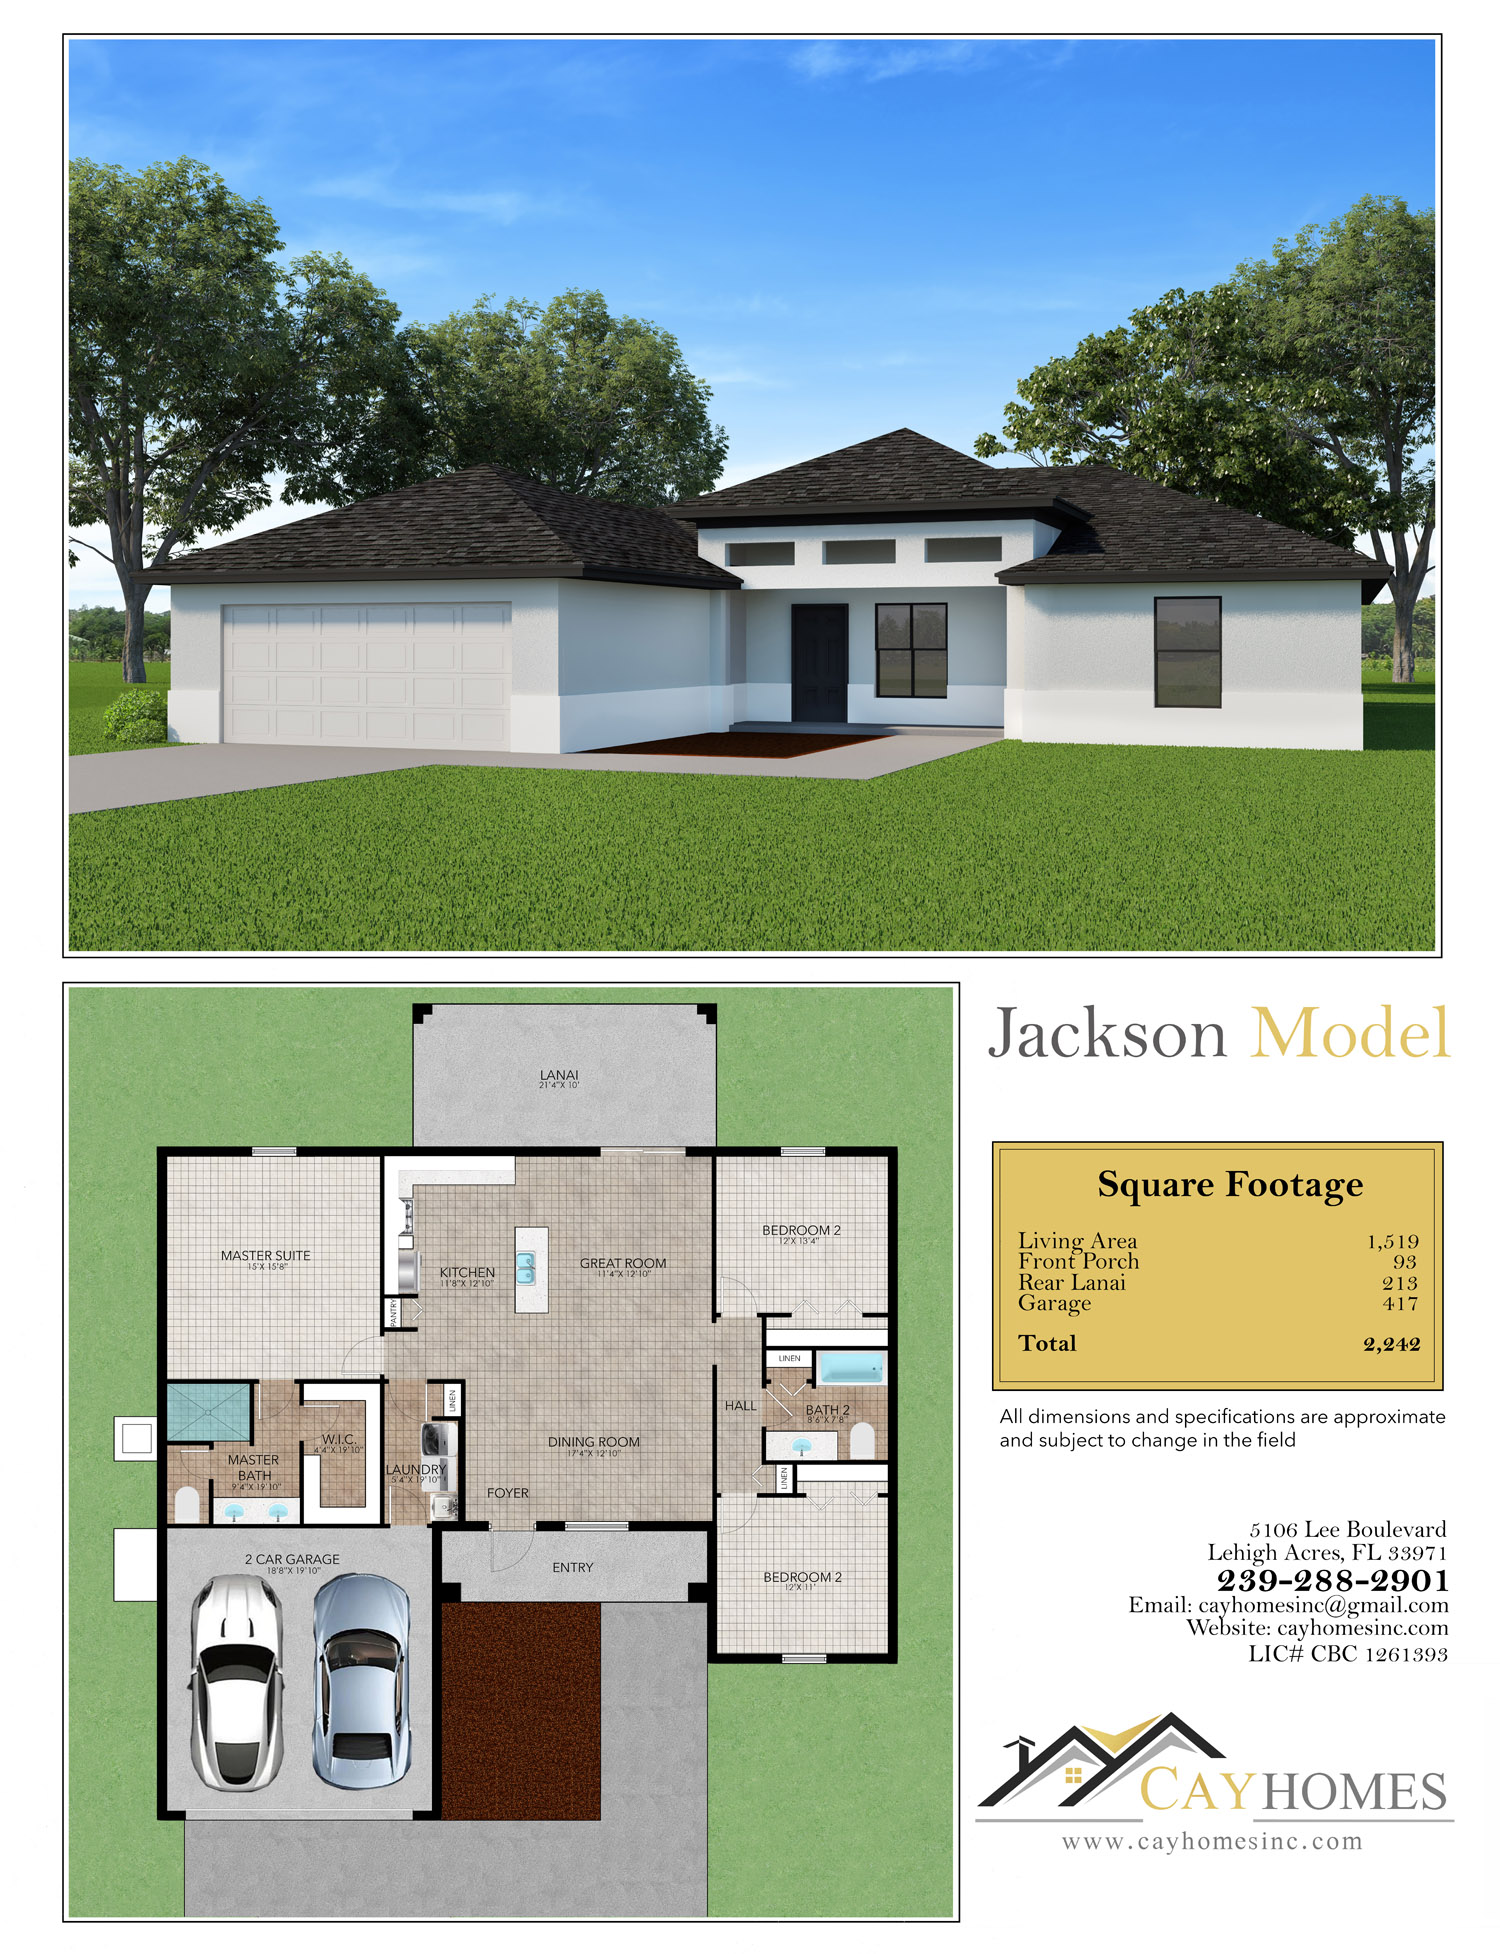 The Jackson Model by Cay Homes